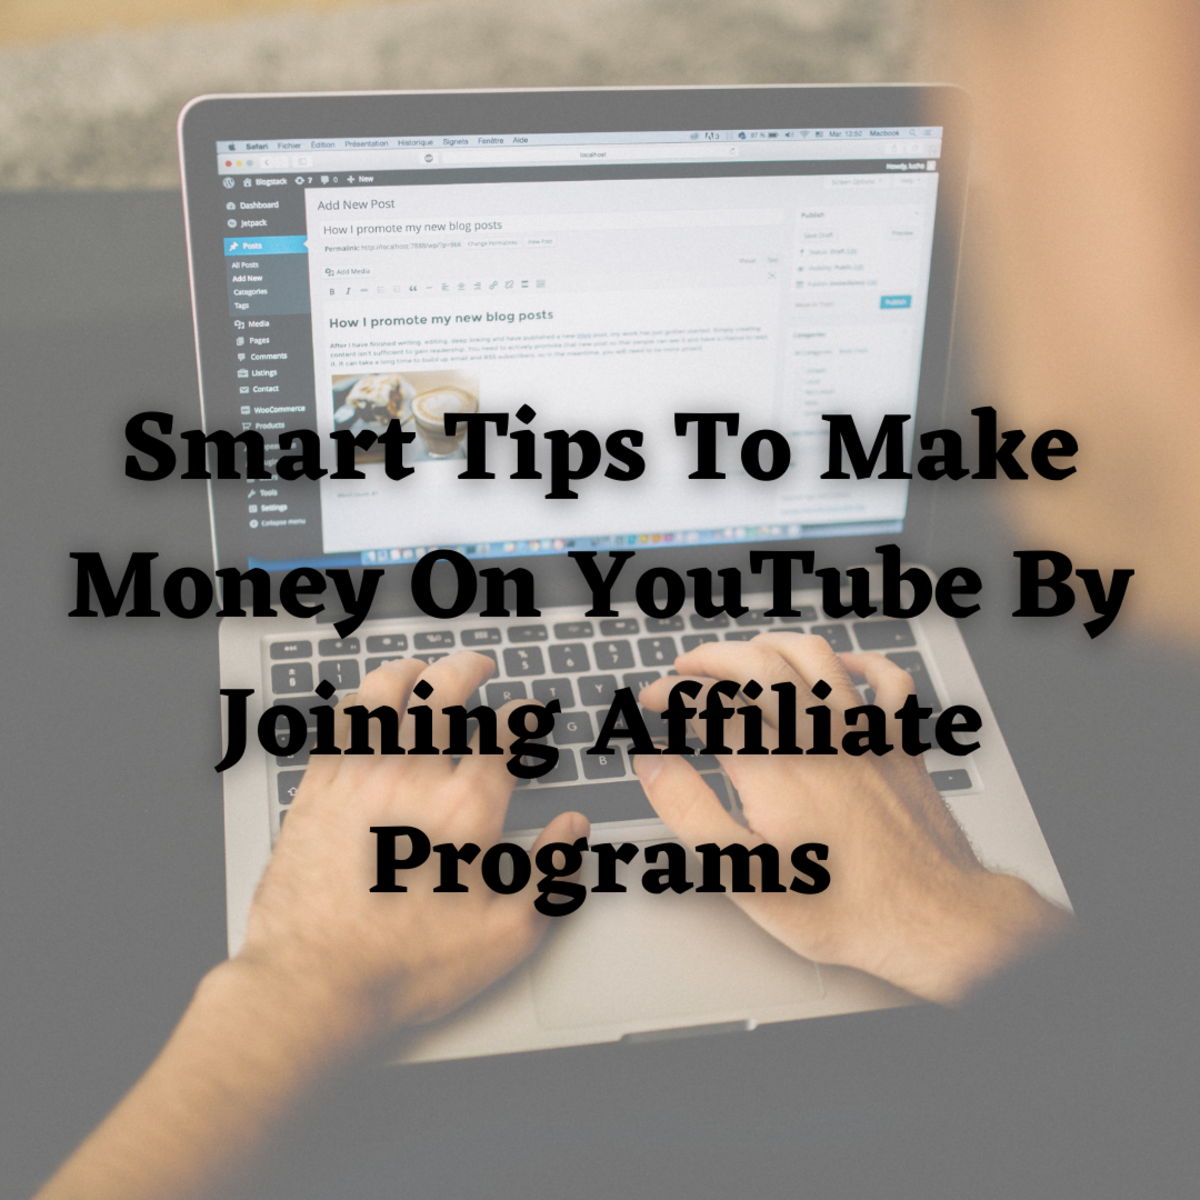 Smart Tips To Make Money On YouTube By Joining Affiliate Programs